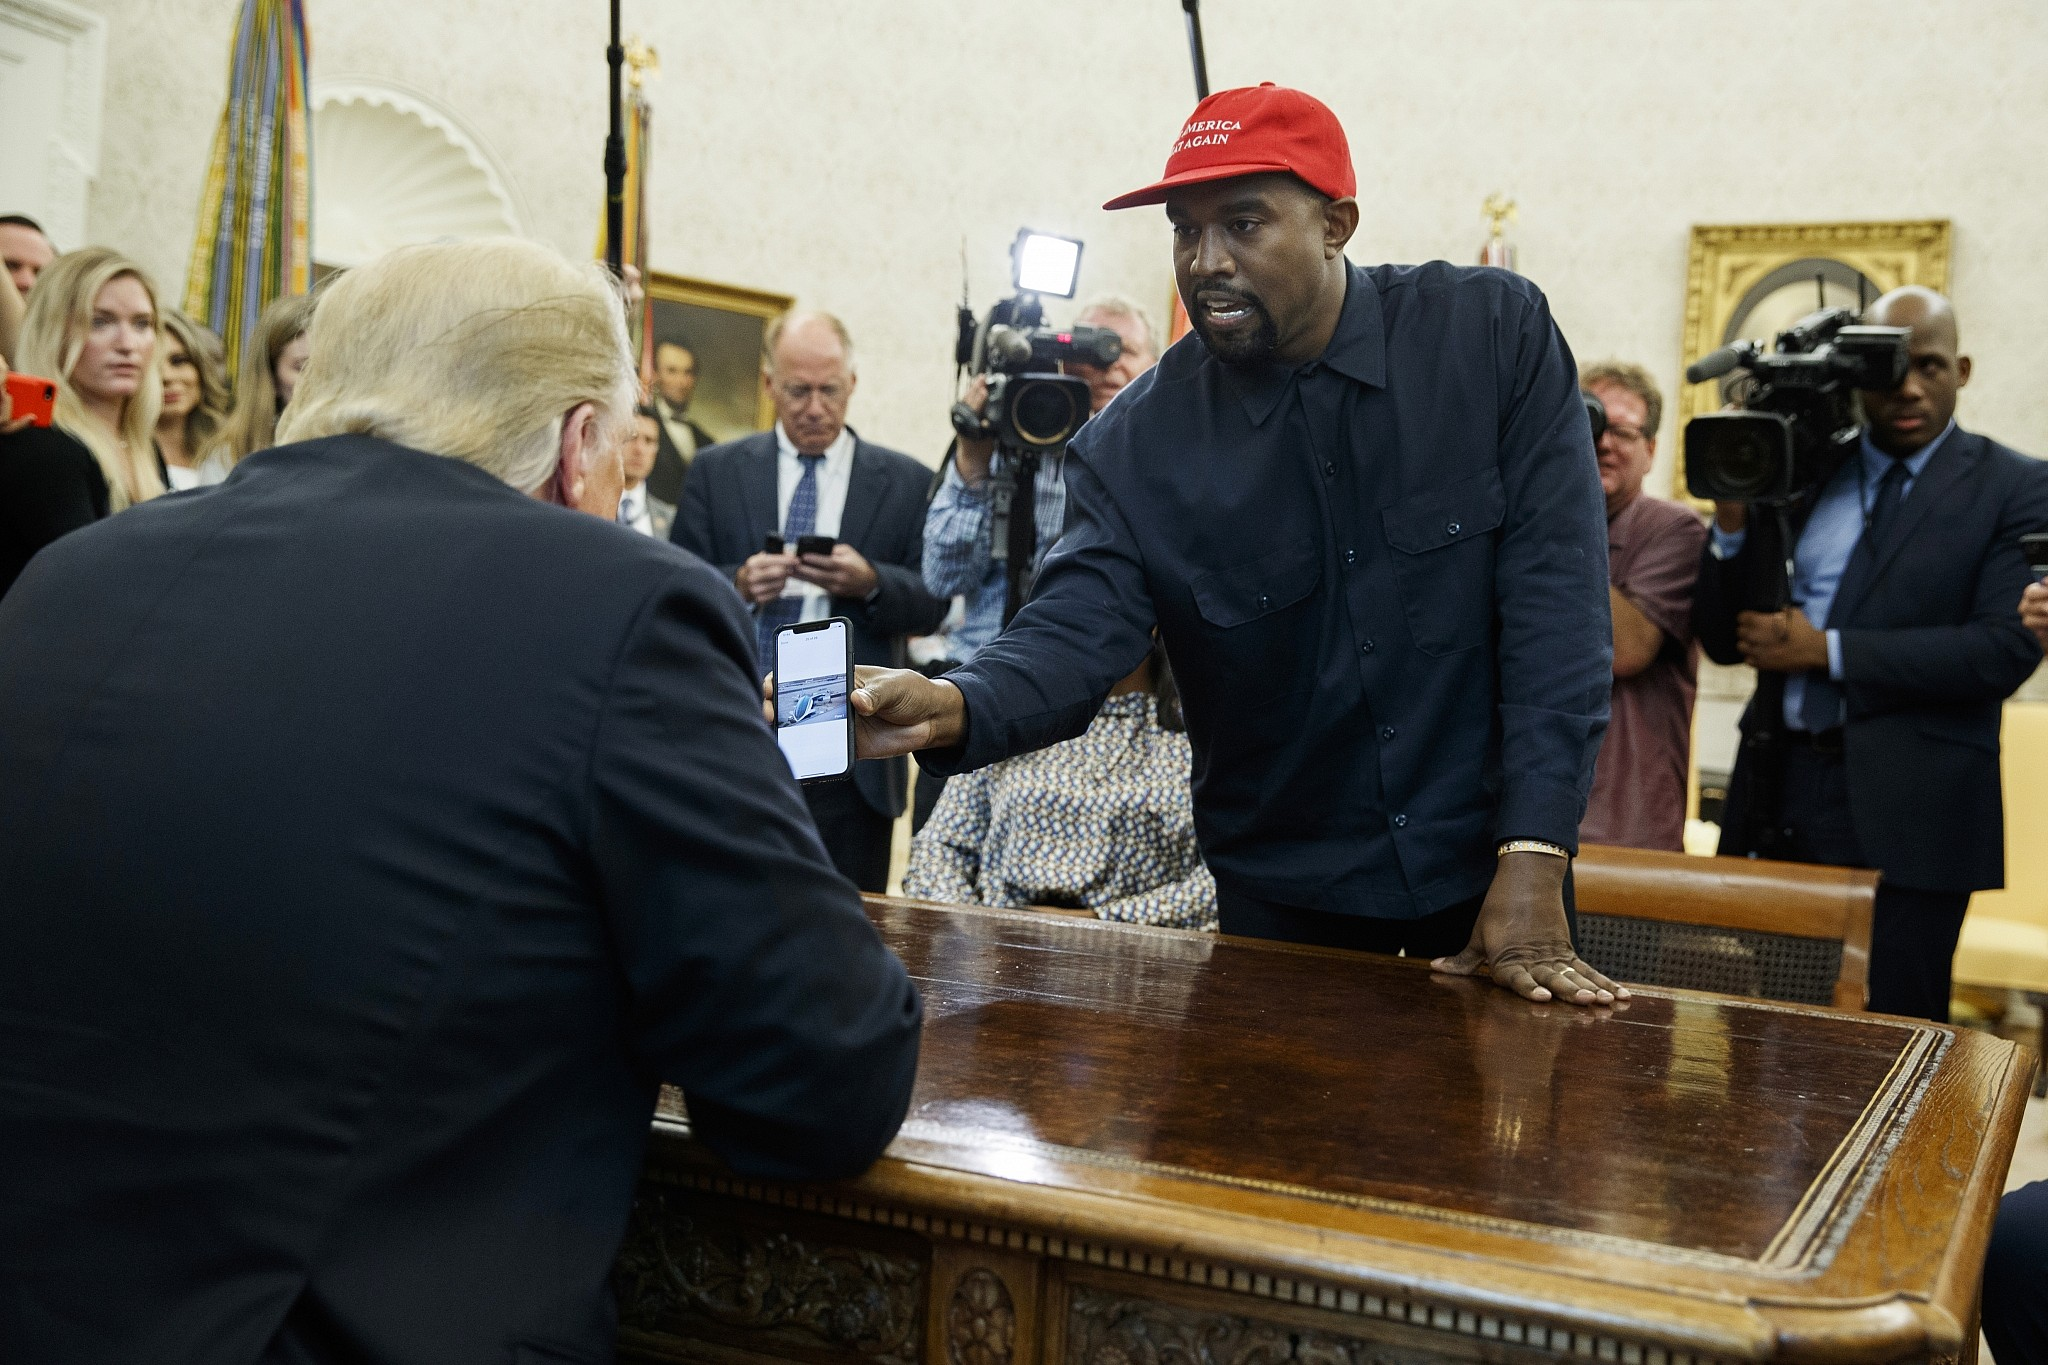 SNL Sends Up Meeting Between Kanye West and Donald Trump